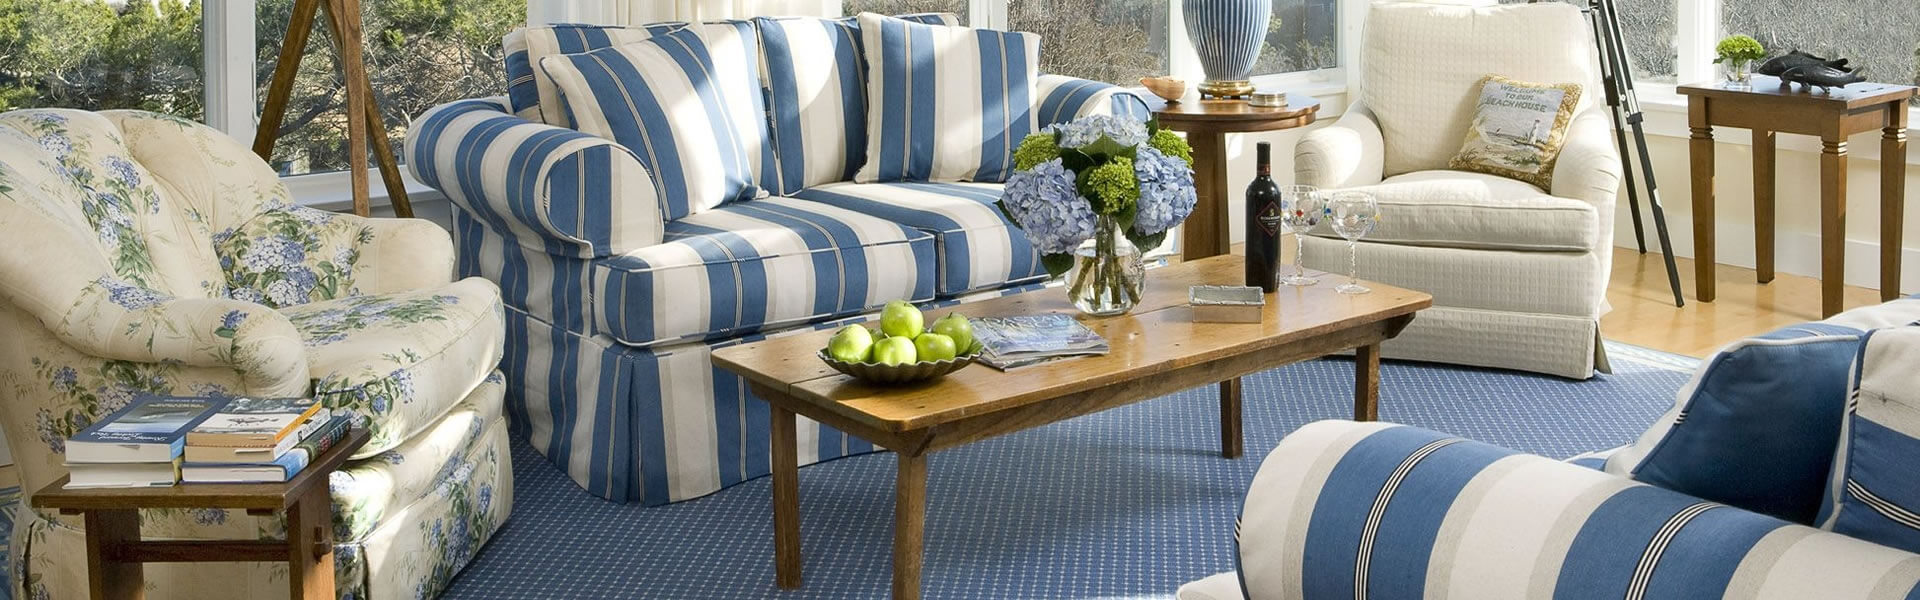 Hamptons Style Beach Look With The Furnishing Centre